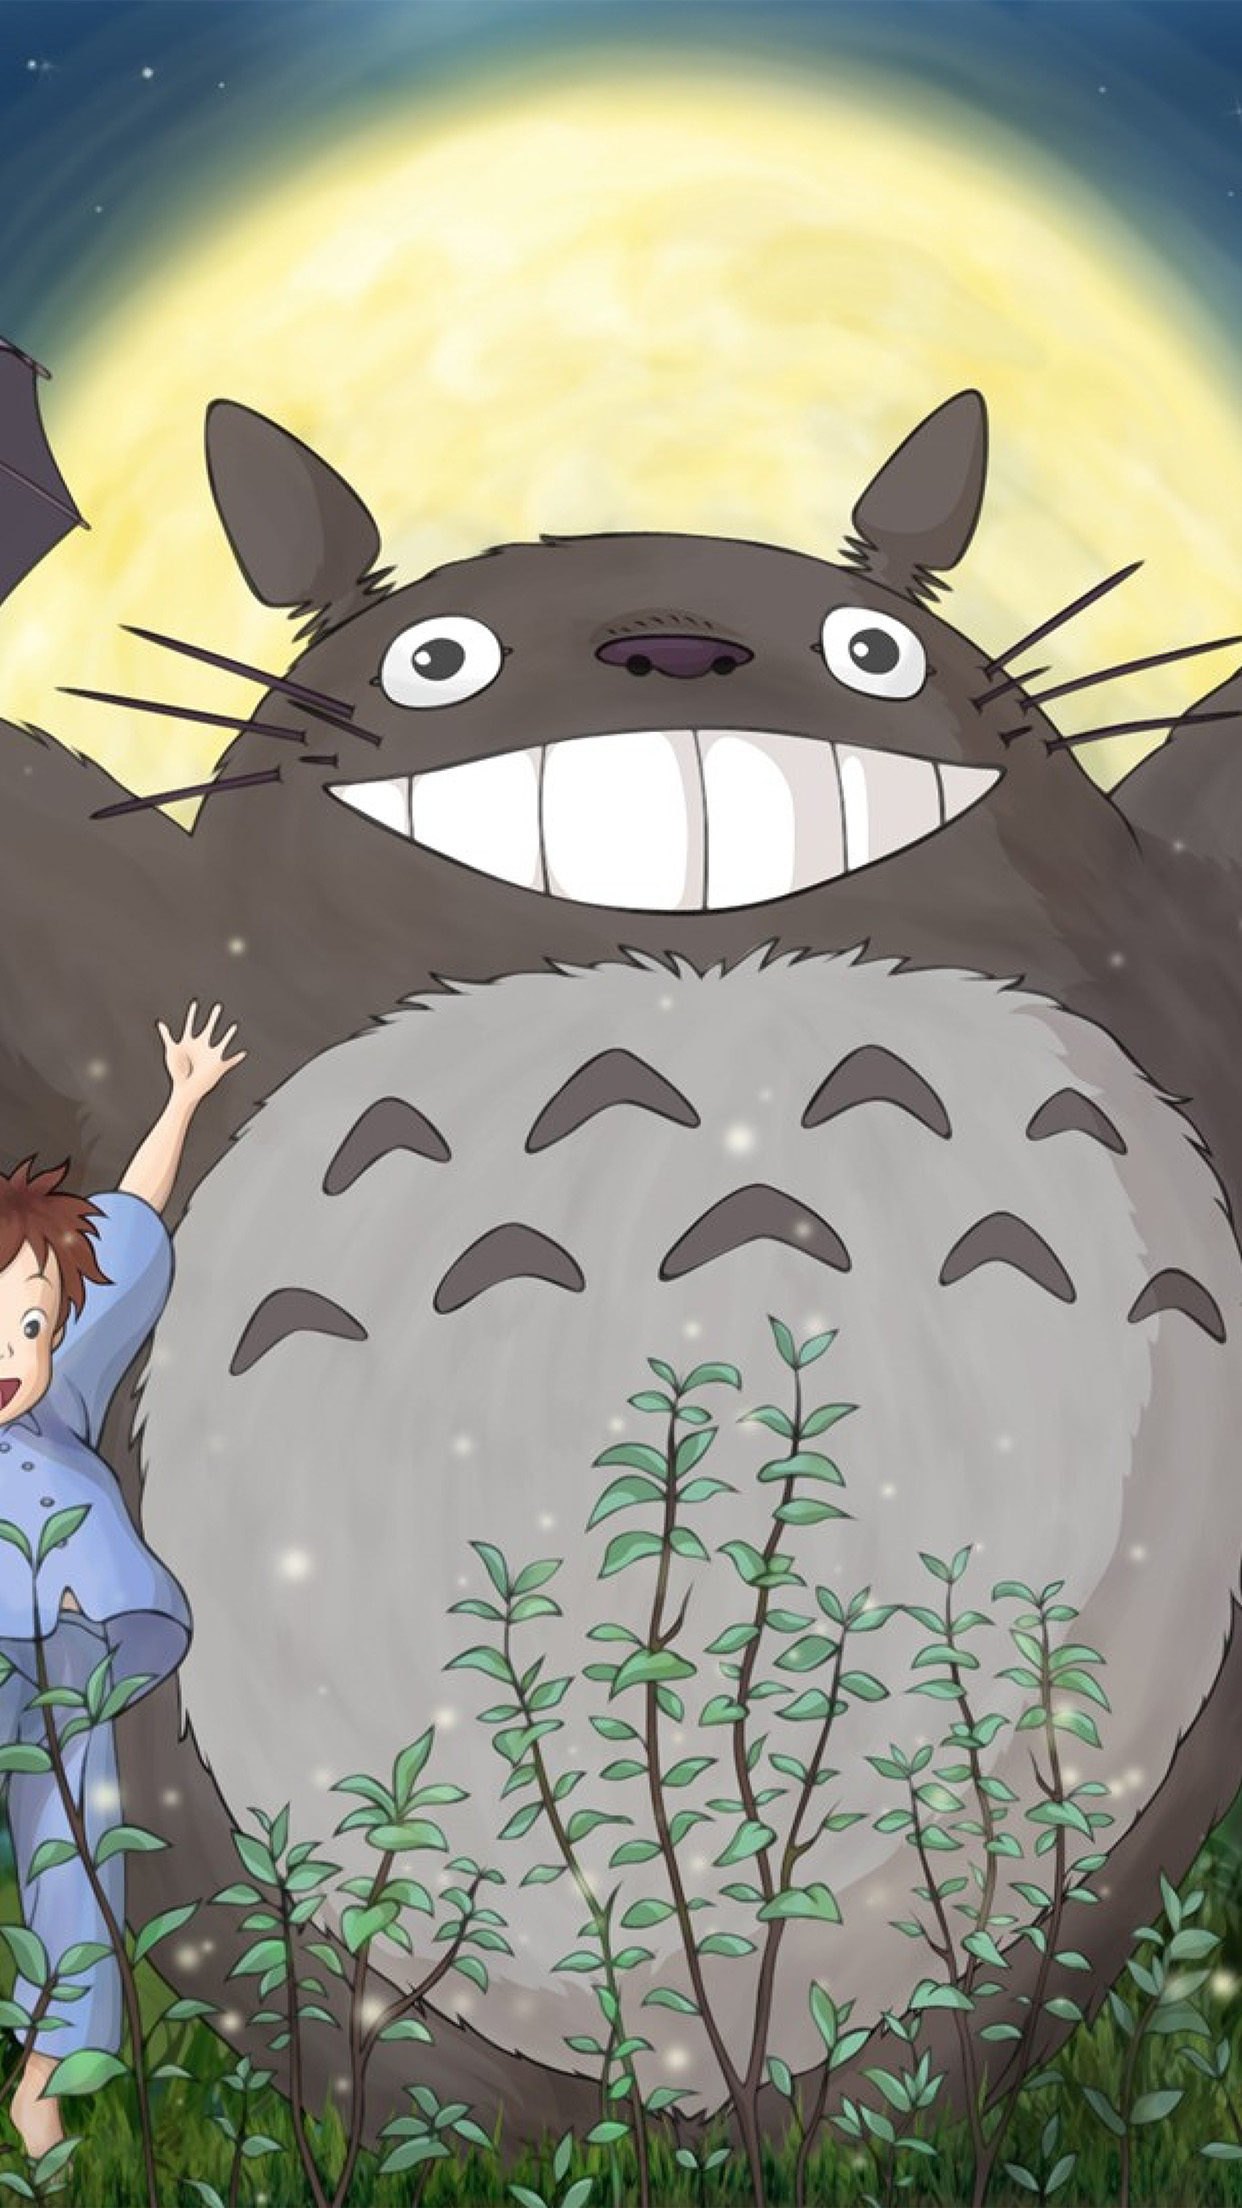 Pixel Forest Wallpaper Cute I Love Papers Au59 Totoro Forest Anime Cute Illustration Art